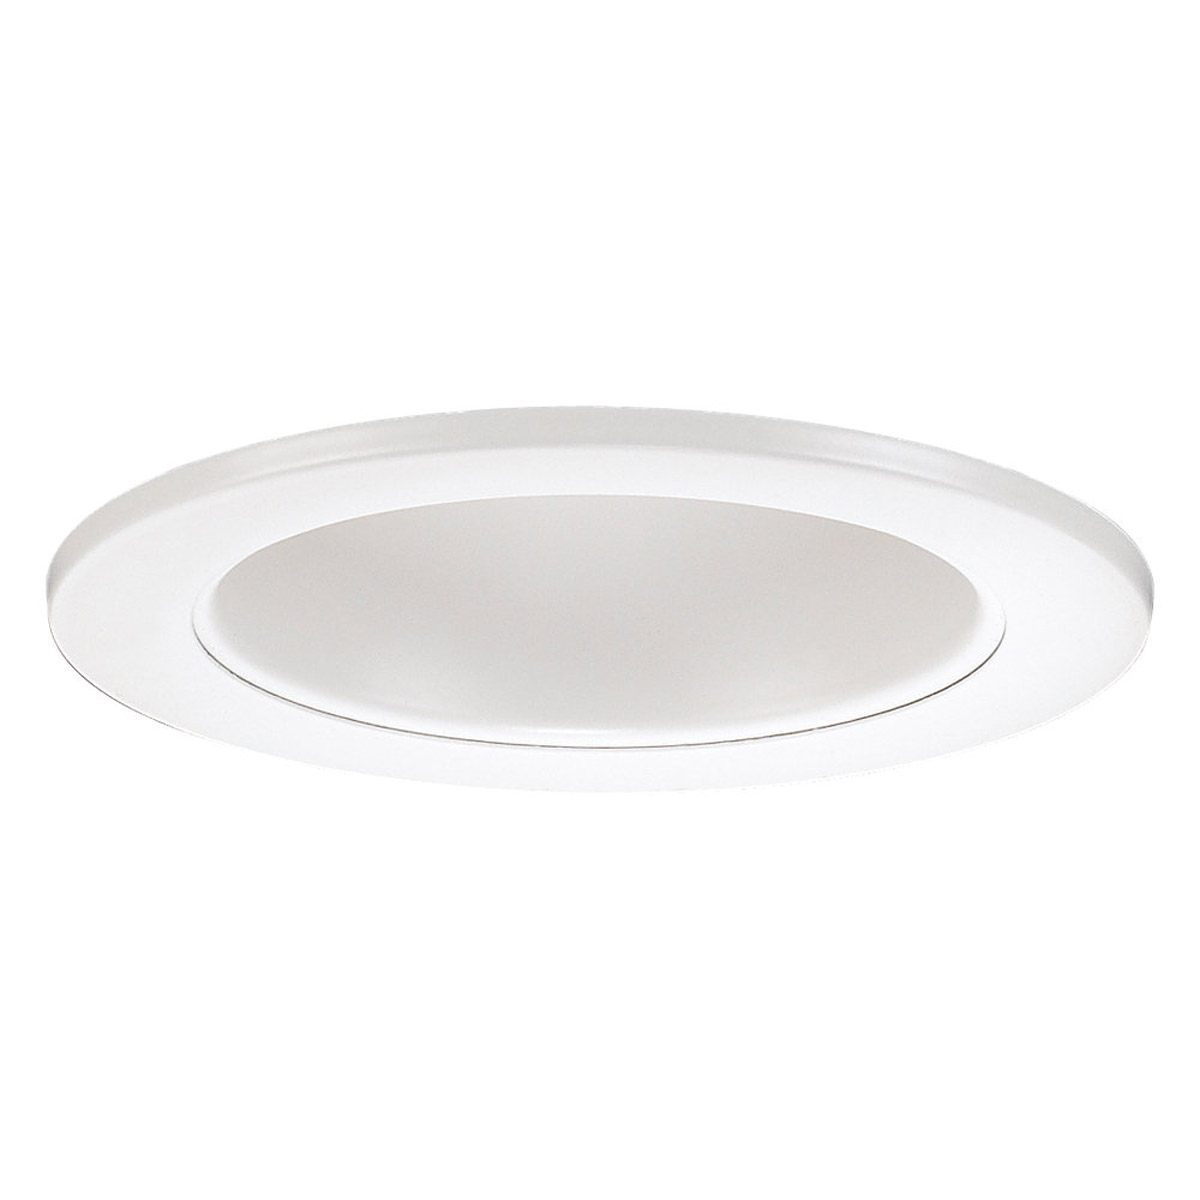 Sea Gull Lighting Signature Recessed Trim Only in White 1162AT-14